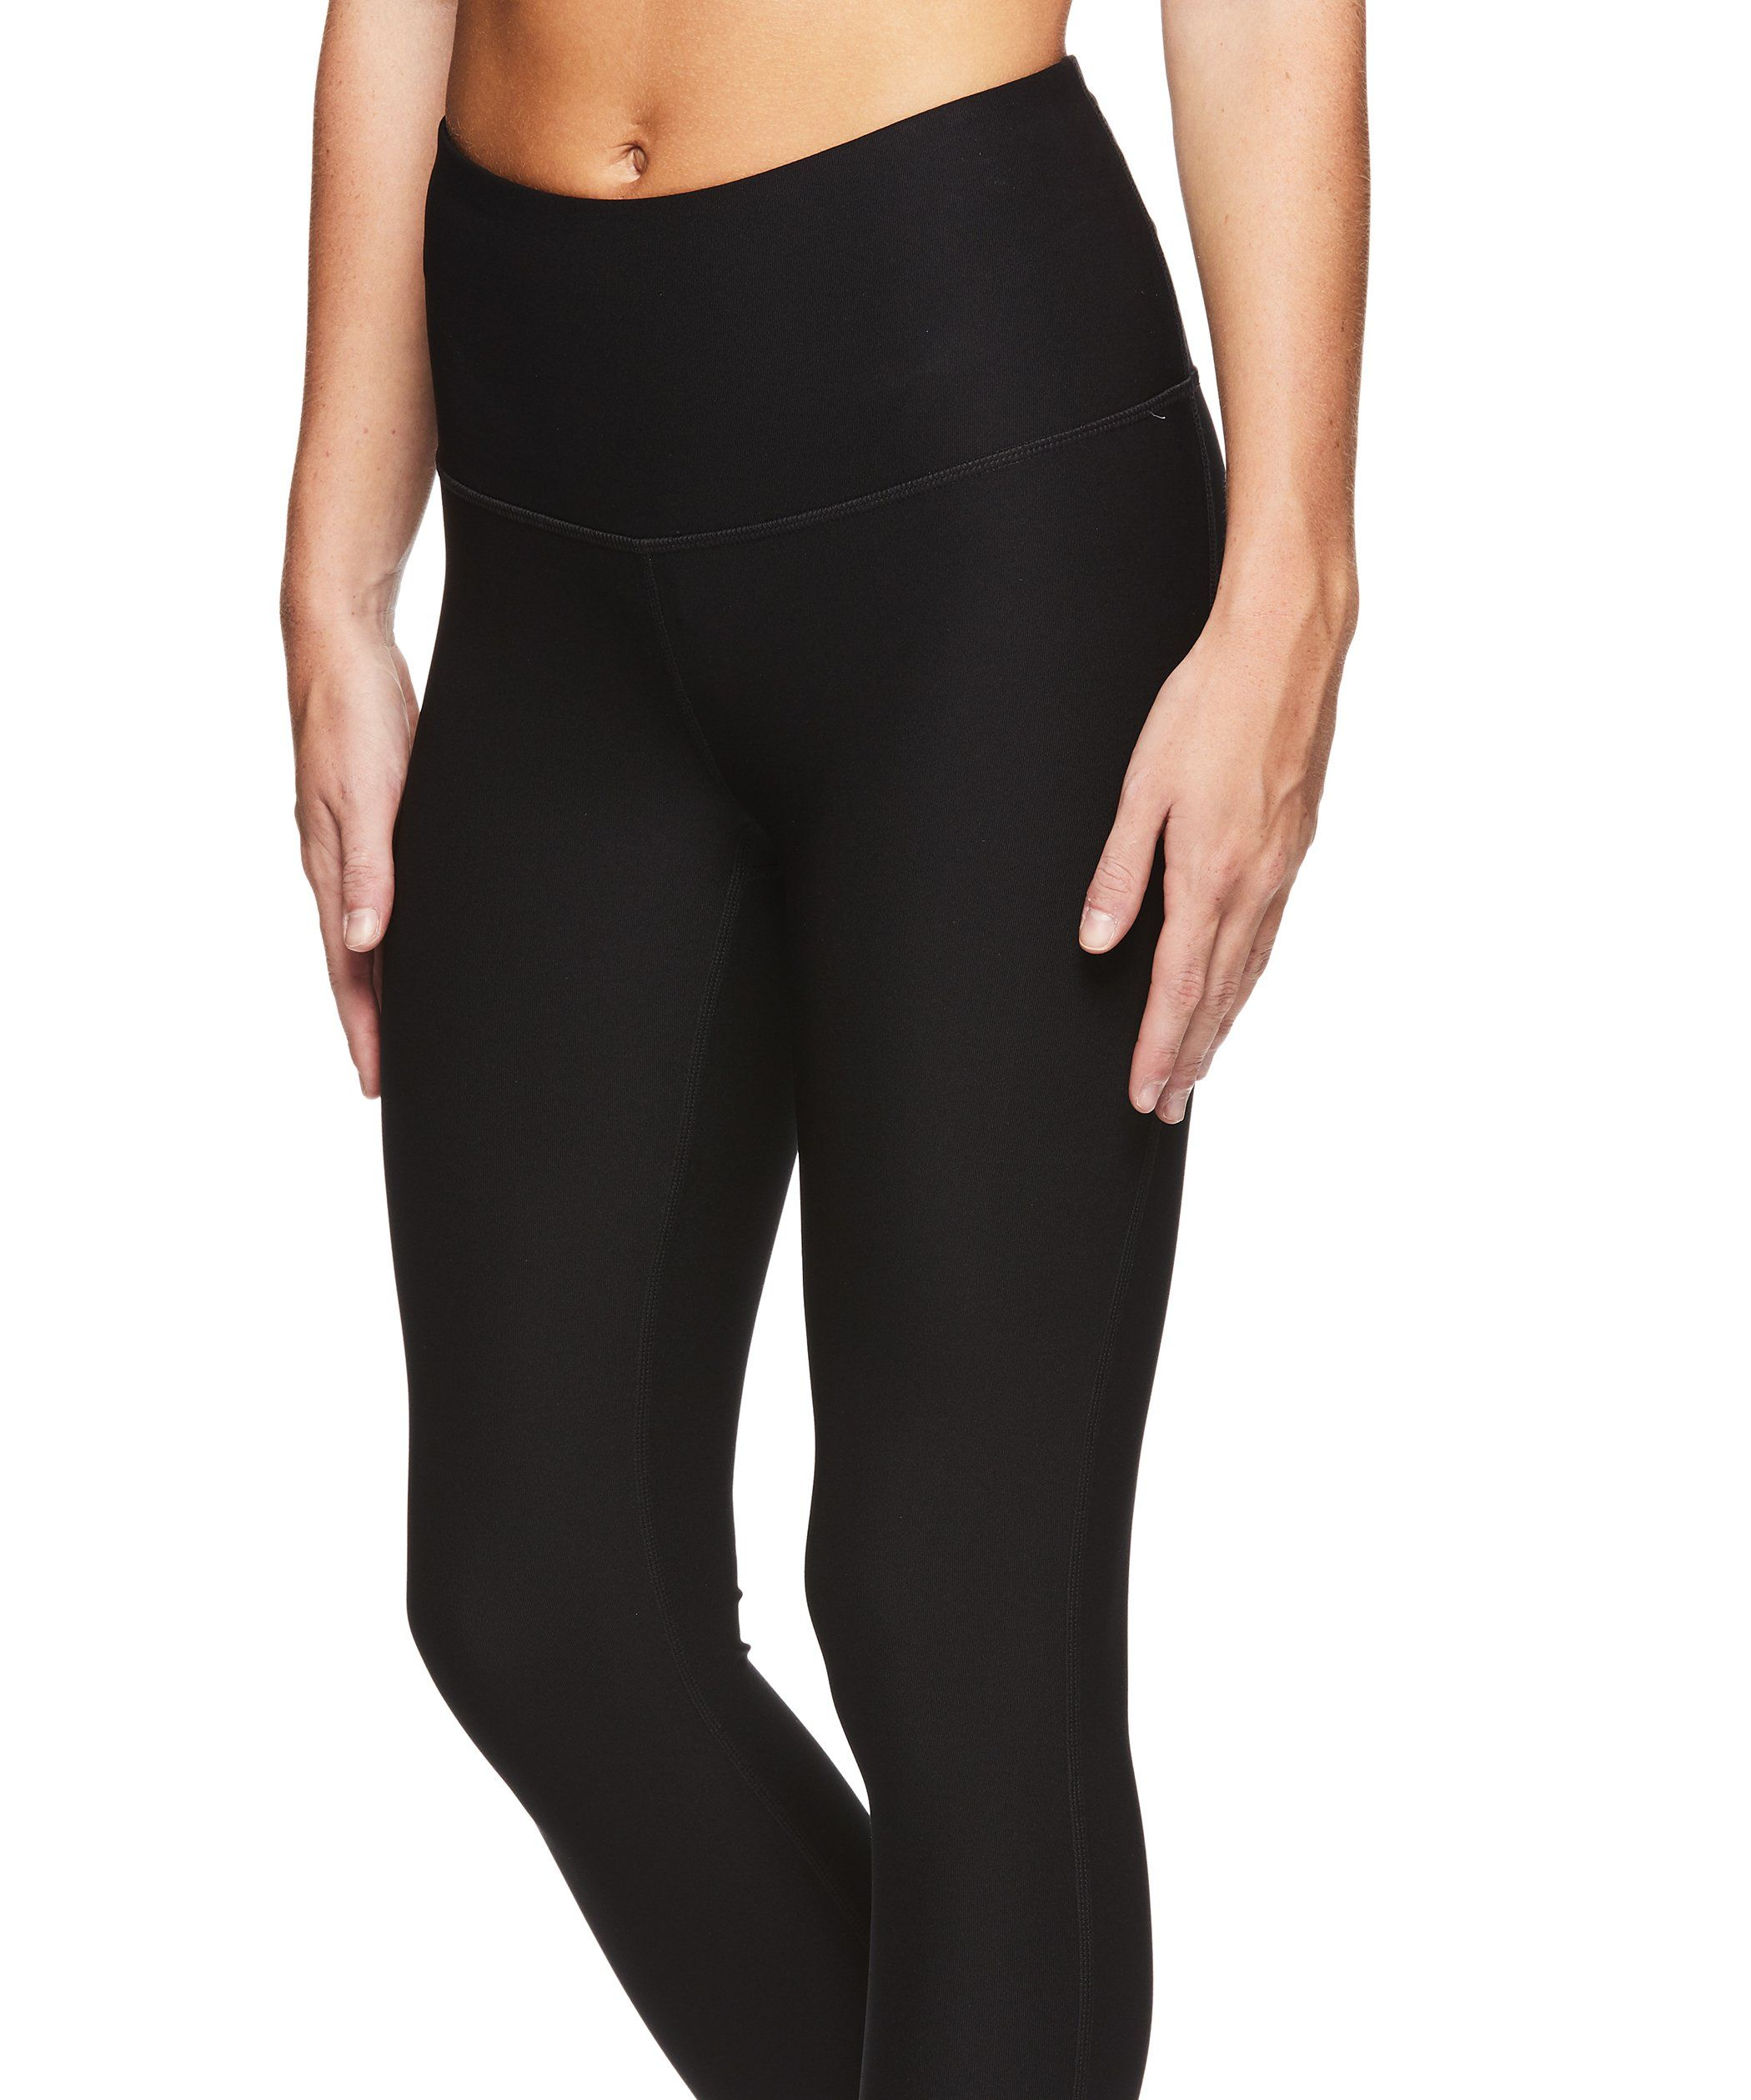 Reebok Womens Capri Leggings with HighRise Waist Performance Compression  Tights     Check out this great product. (This is an affiliate link and I  receive a ... 58abf0db8